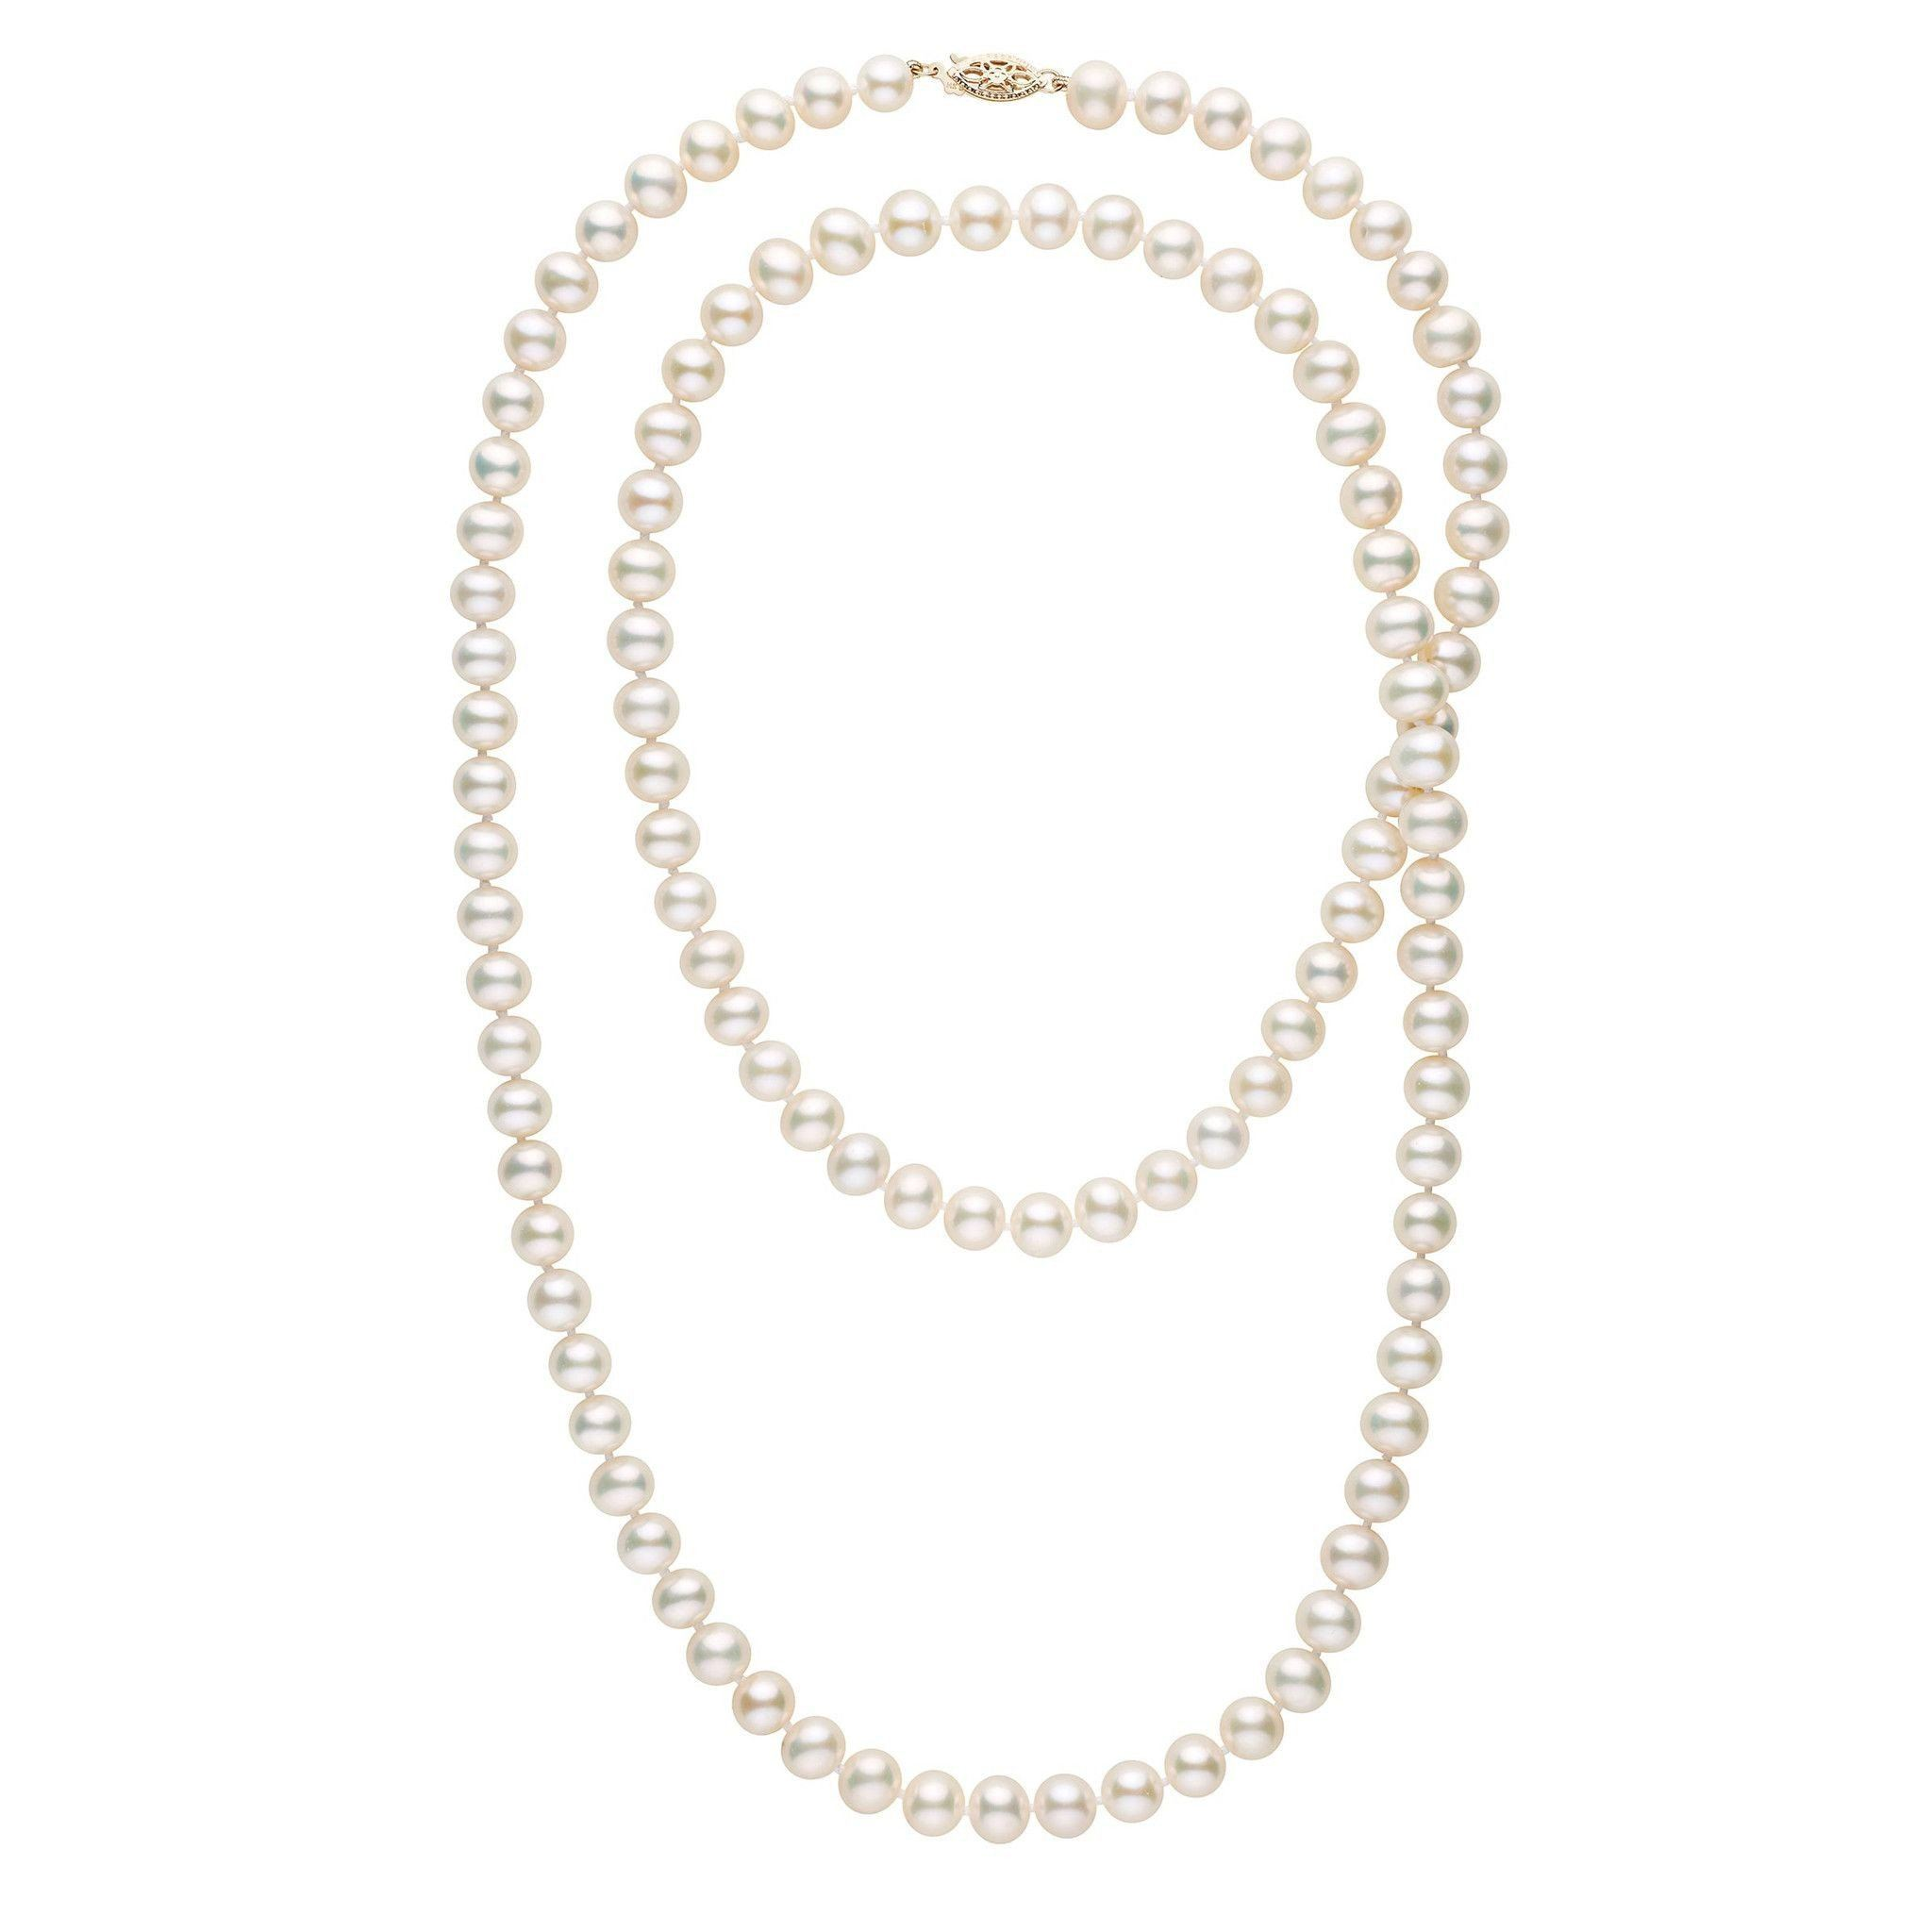 35-inch 7.5-8.0 mm AA+ White Freshwater Pearl Necklace